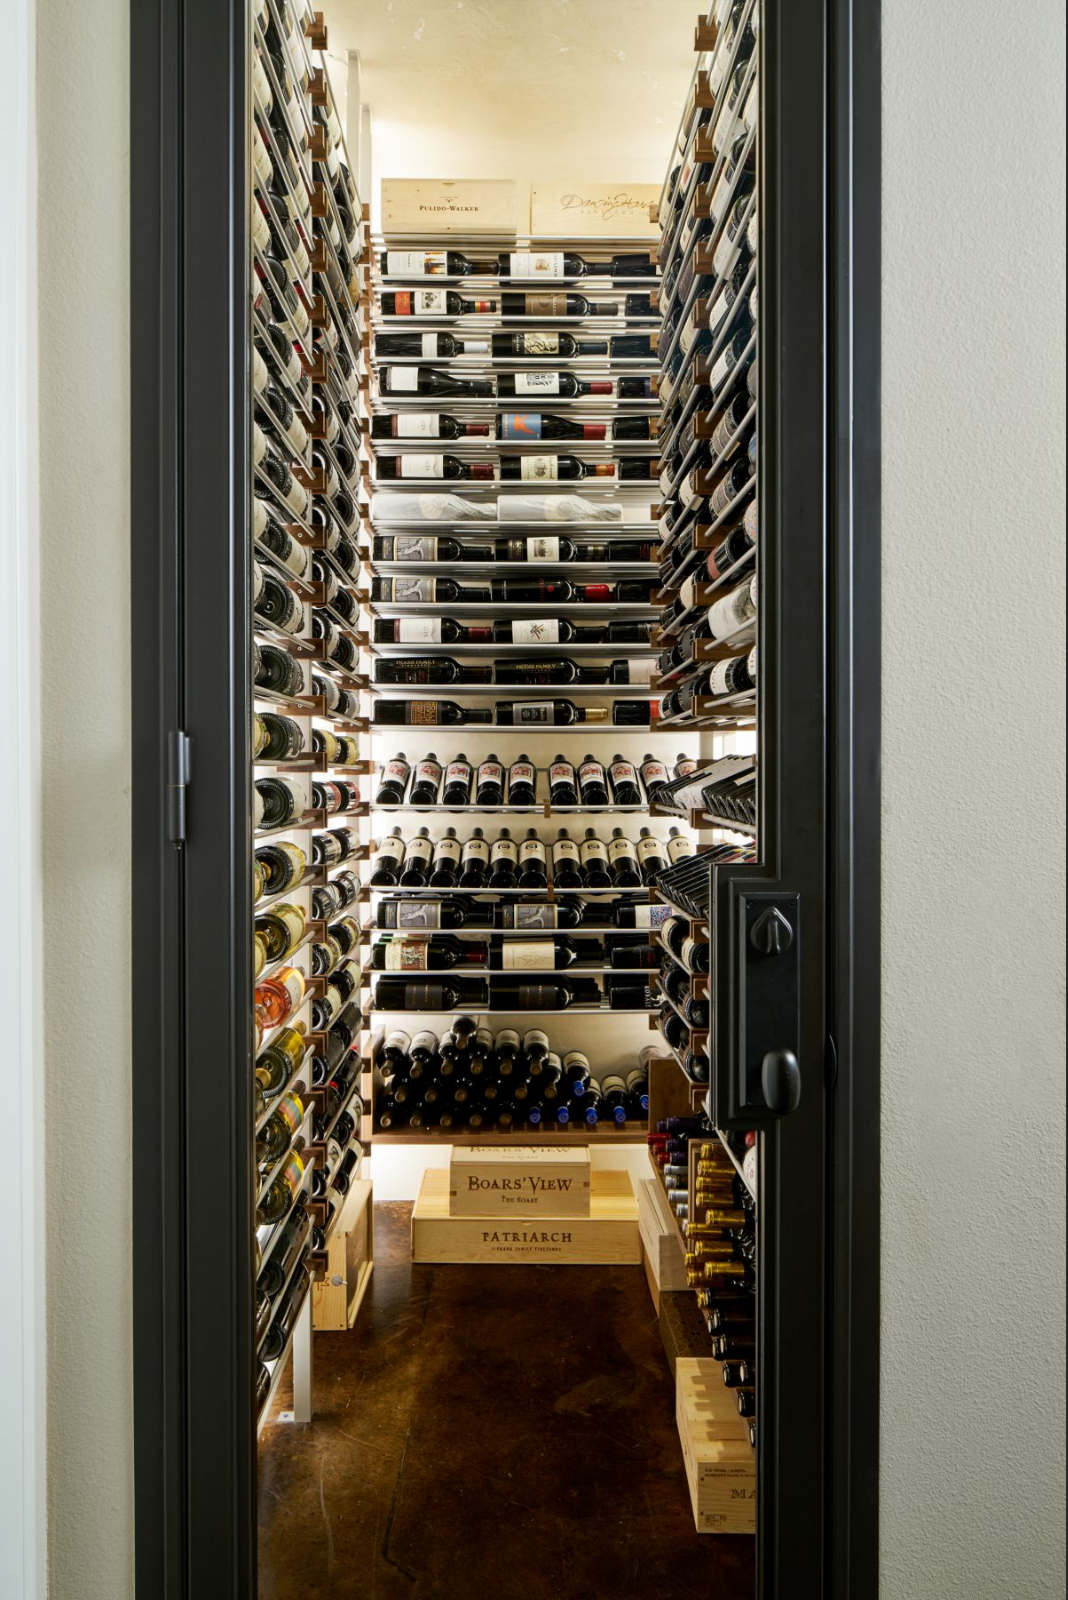 700 Bottles Of Wine Stored In Floor To Ceiling Custom Racks And Temperature Controlled Walls More Fr Home Wine Cellars Wine Wall Decor Wine Cellar Inspiration